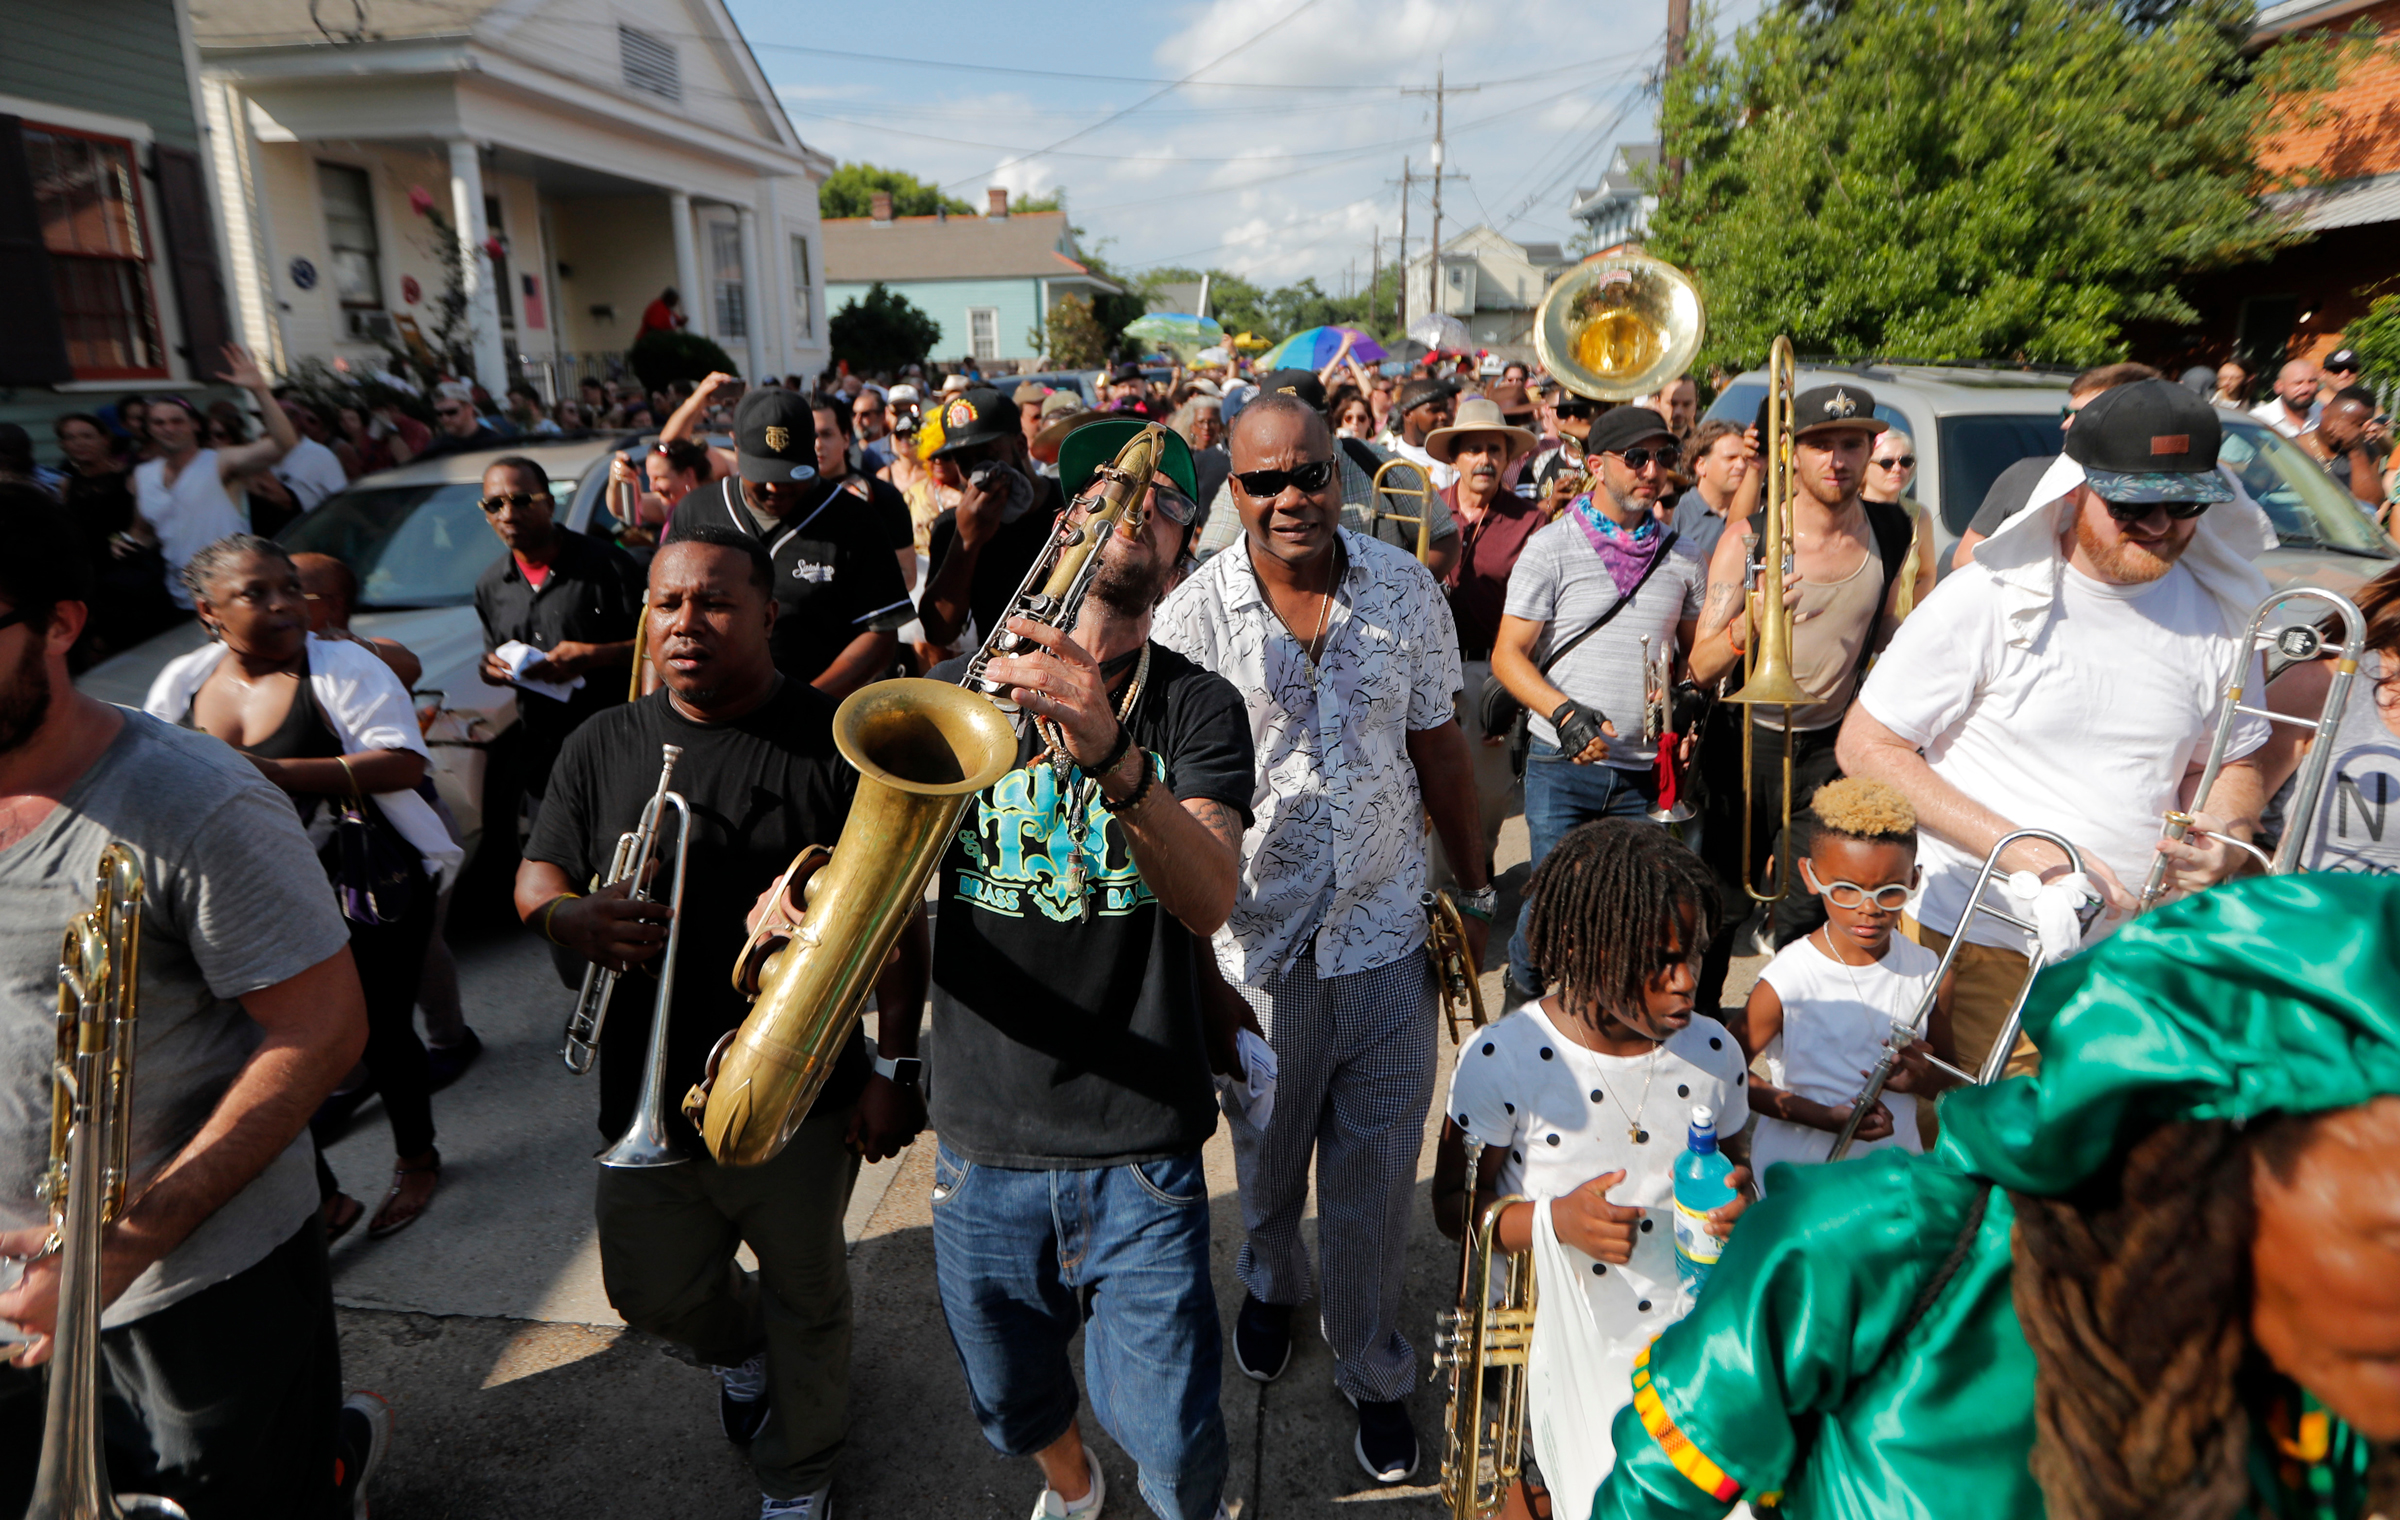 People participate in a second line parade in New Orleans, in honor of famed New Orleans musician Mac 'Dr John' Rebennack, who passed away ThursdayObit Mac 'Dr John' Rebennack, New Orleans, USA - 07 Jun 2019